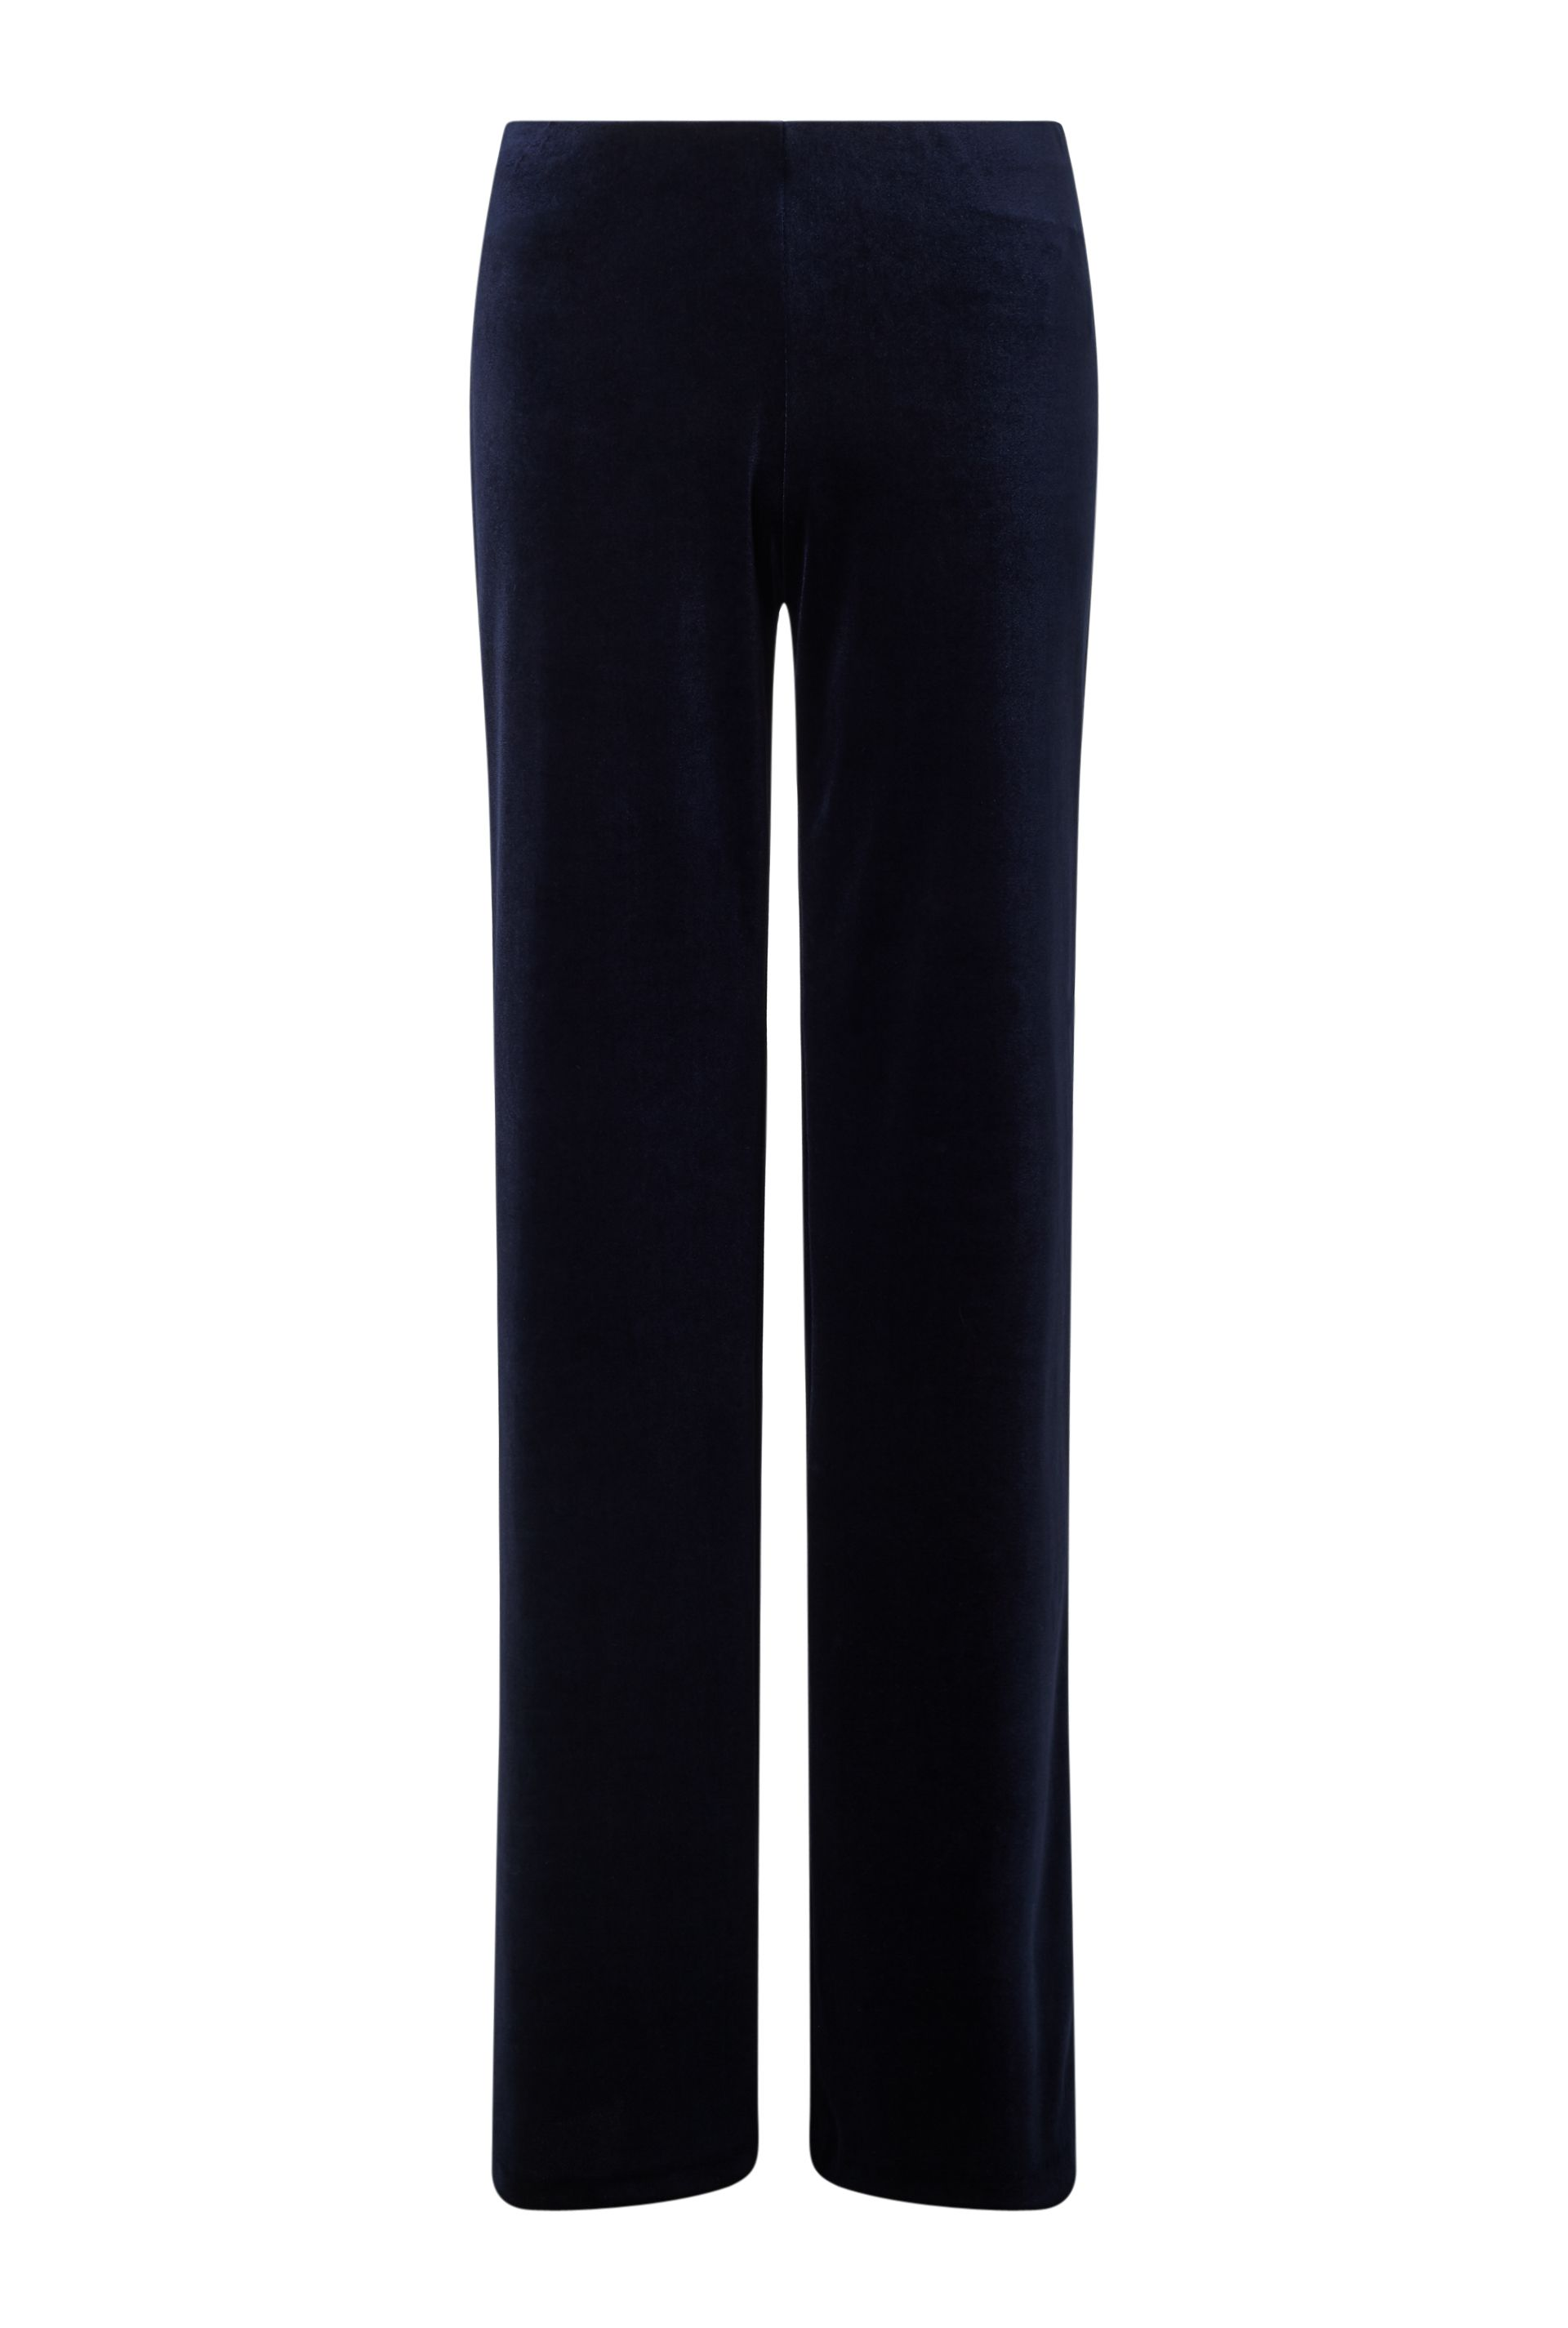 James Lakeland Velvet Wide Leg Trousers, Blue